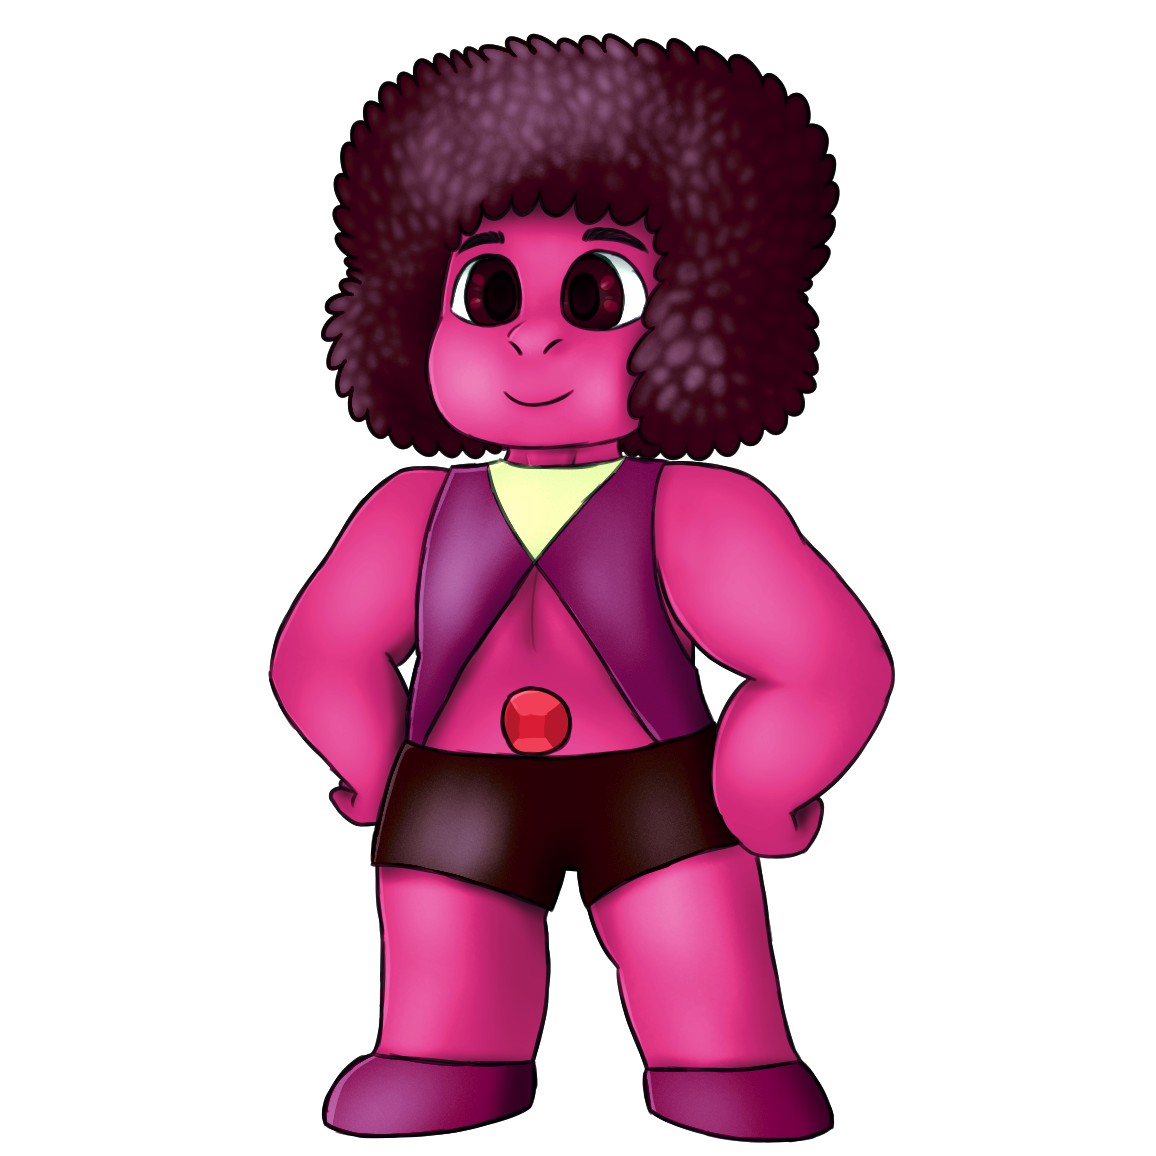 SEE THIS STYLE? SEE THIS STYLE RIGHT HERE? For $15 I will draw your Gemsona like that.Please, I need money. Send me a message (NOT an ask) for details.